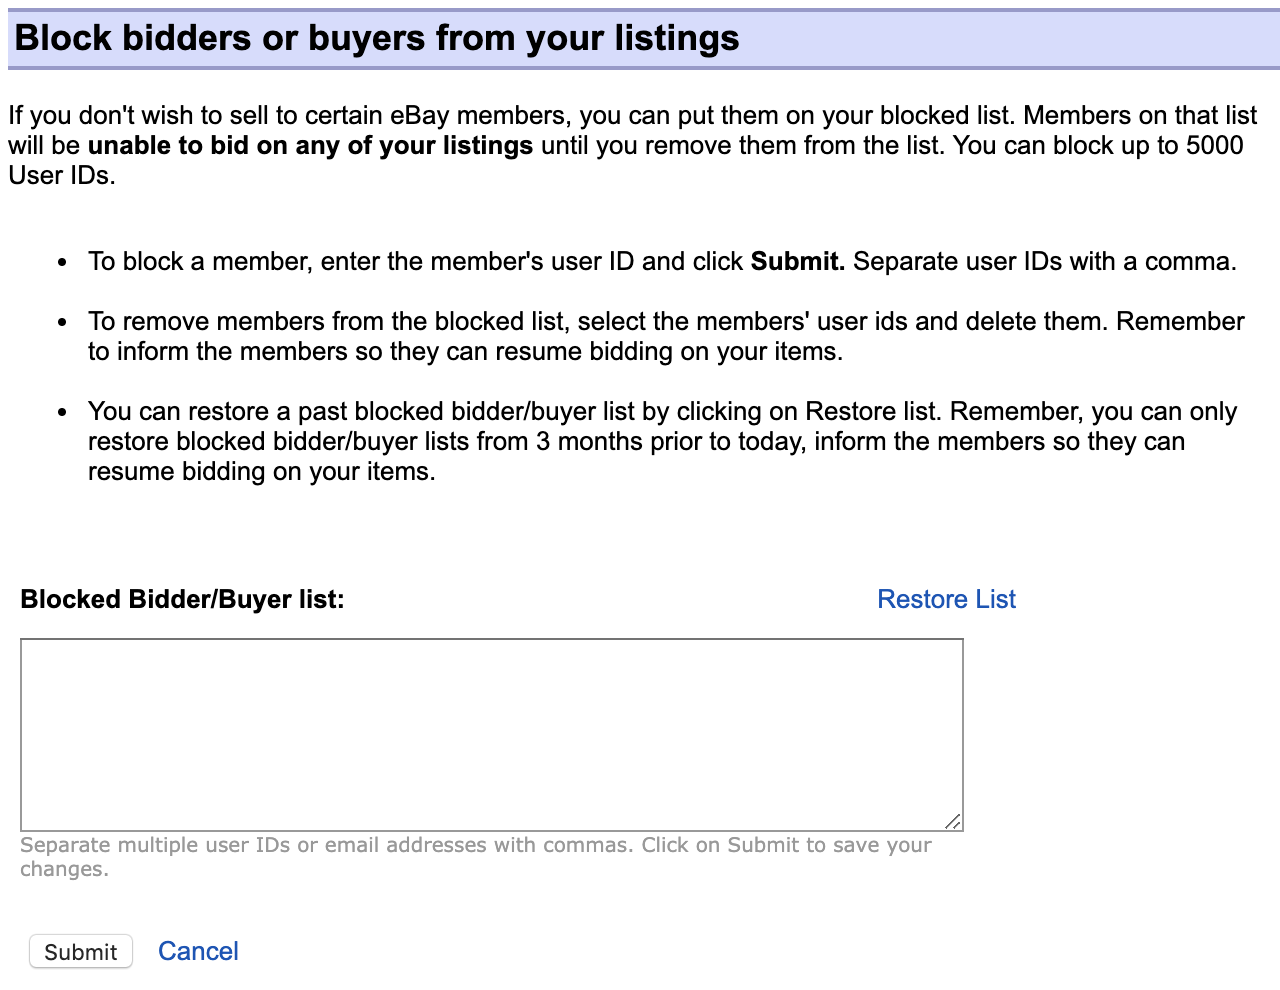 eBay block bidders or buyers page screenshot